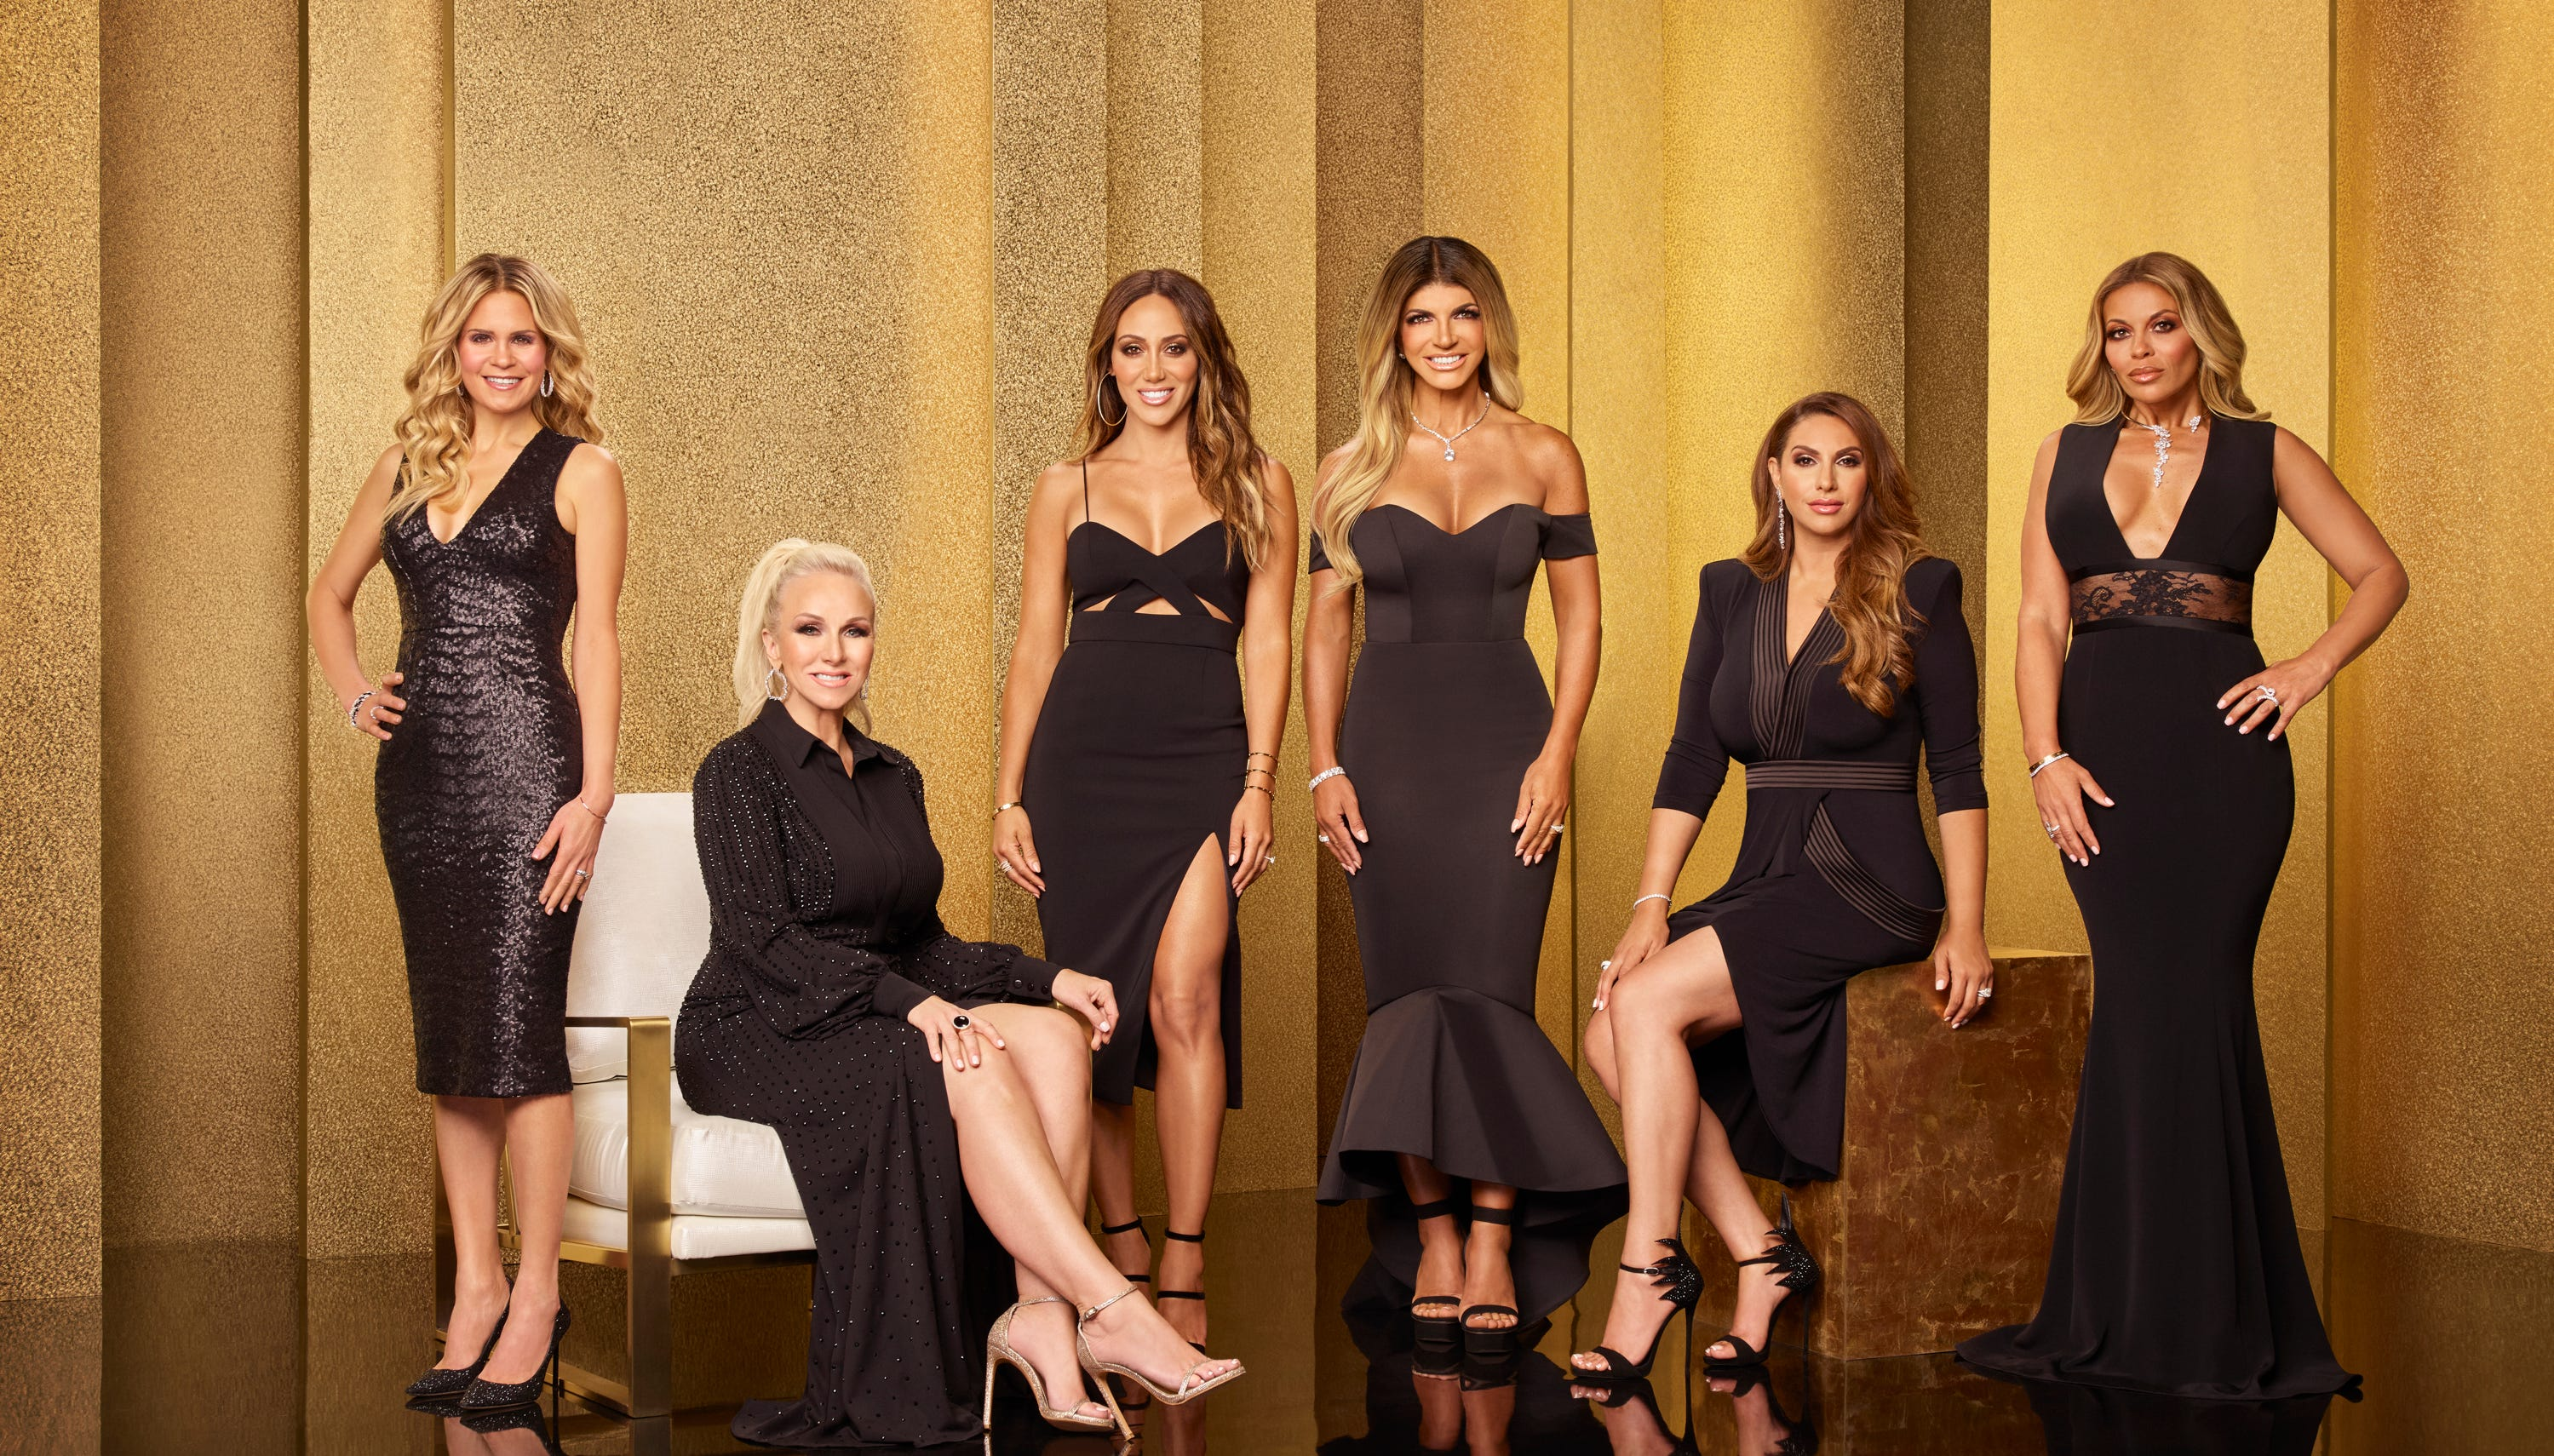 BravoCon to feature 'Real Housewives of New Jersey,' more 'Bravolebrities' in NYC: RHONJ